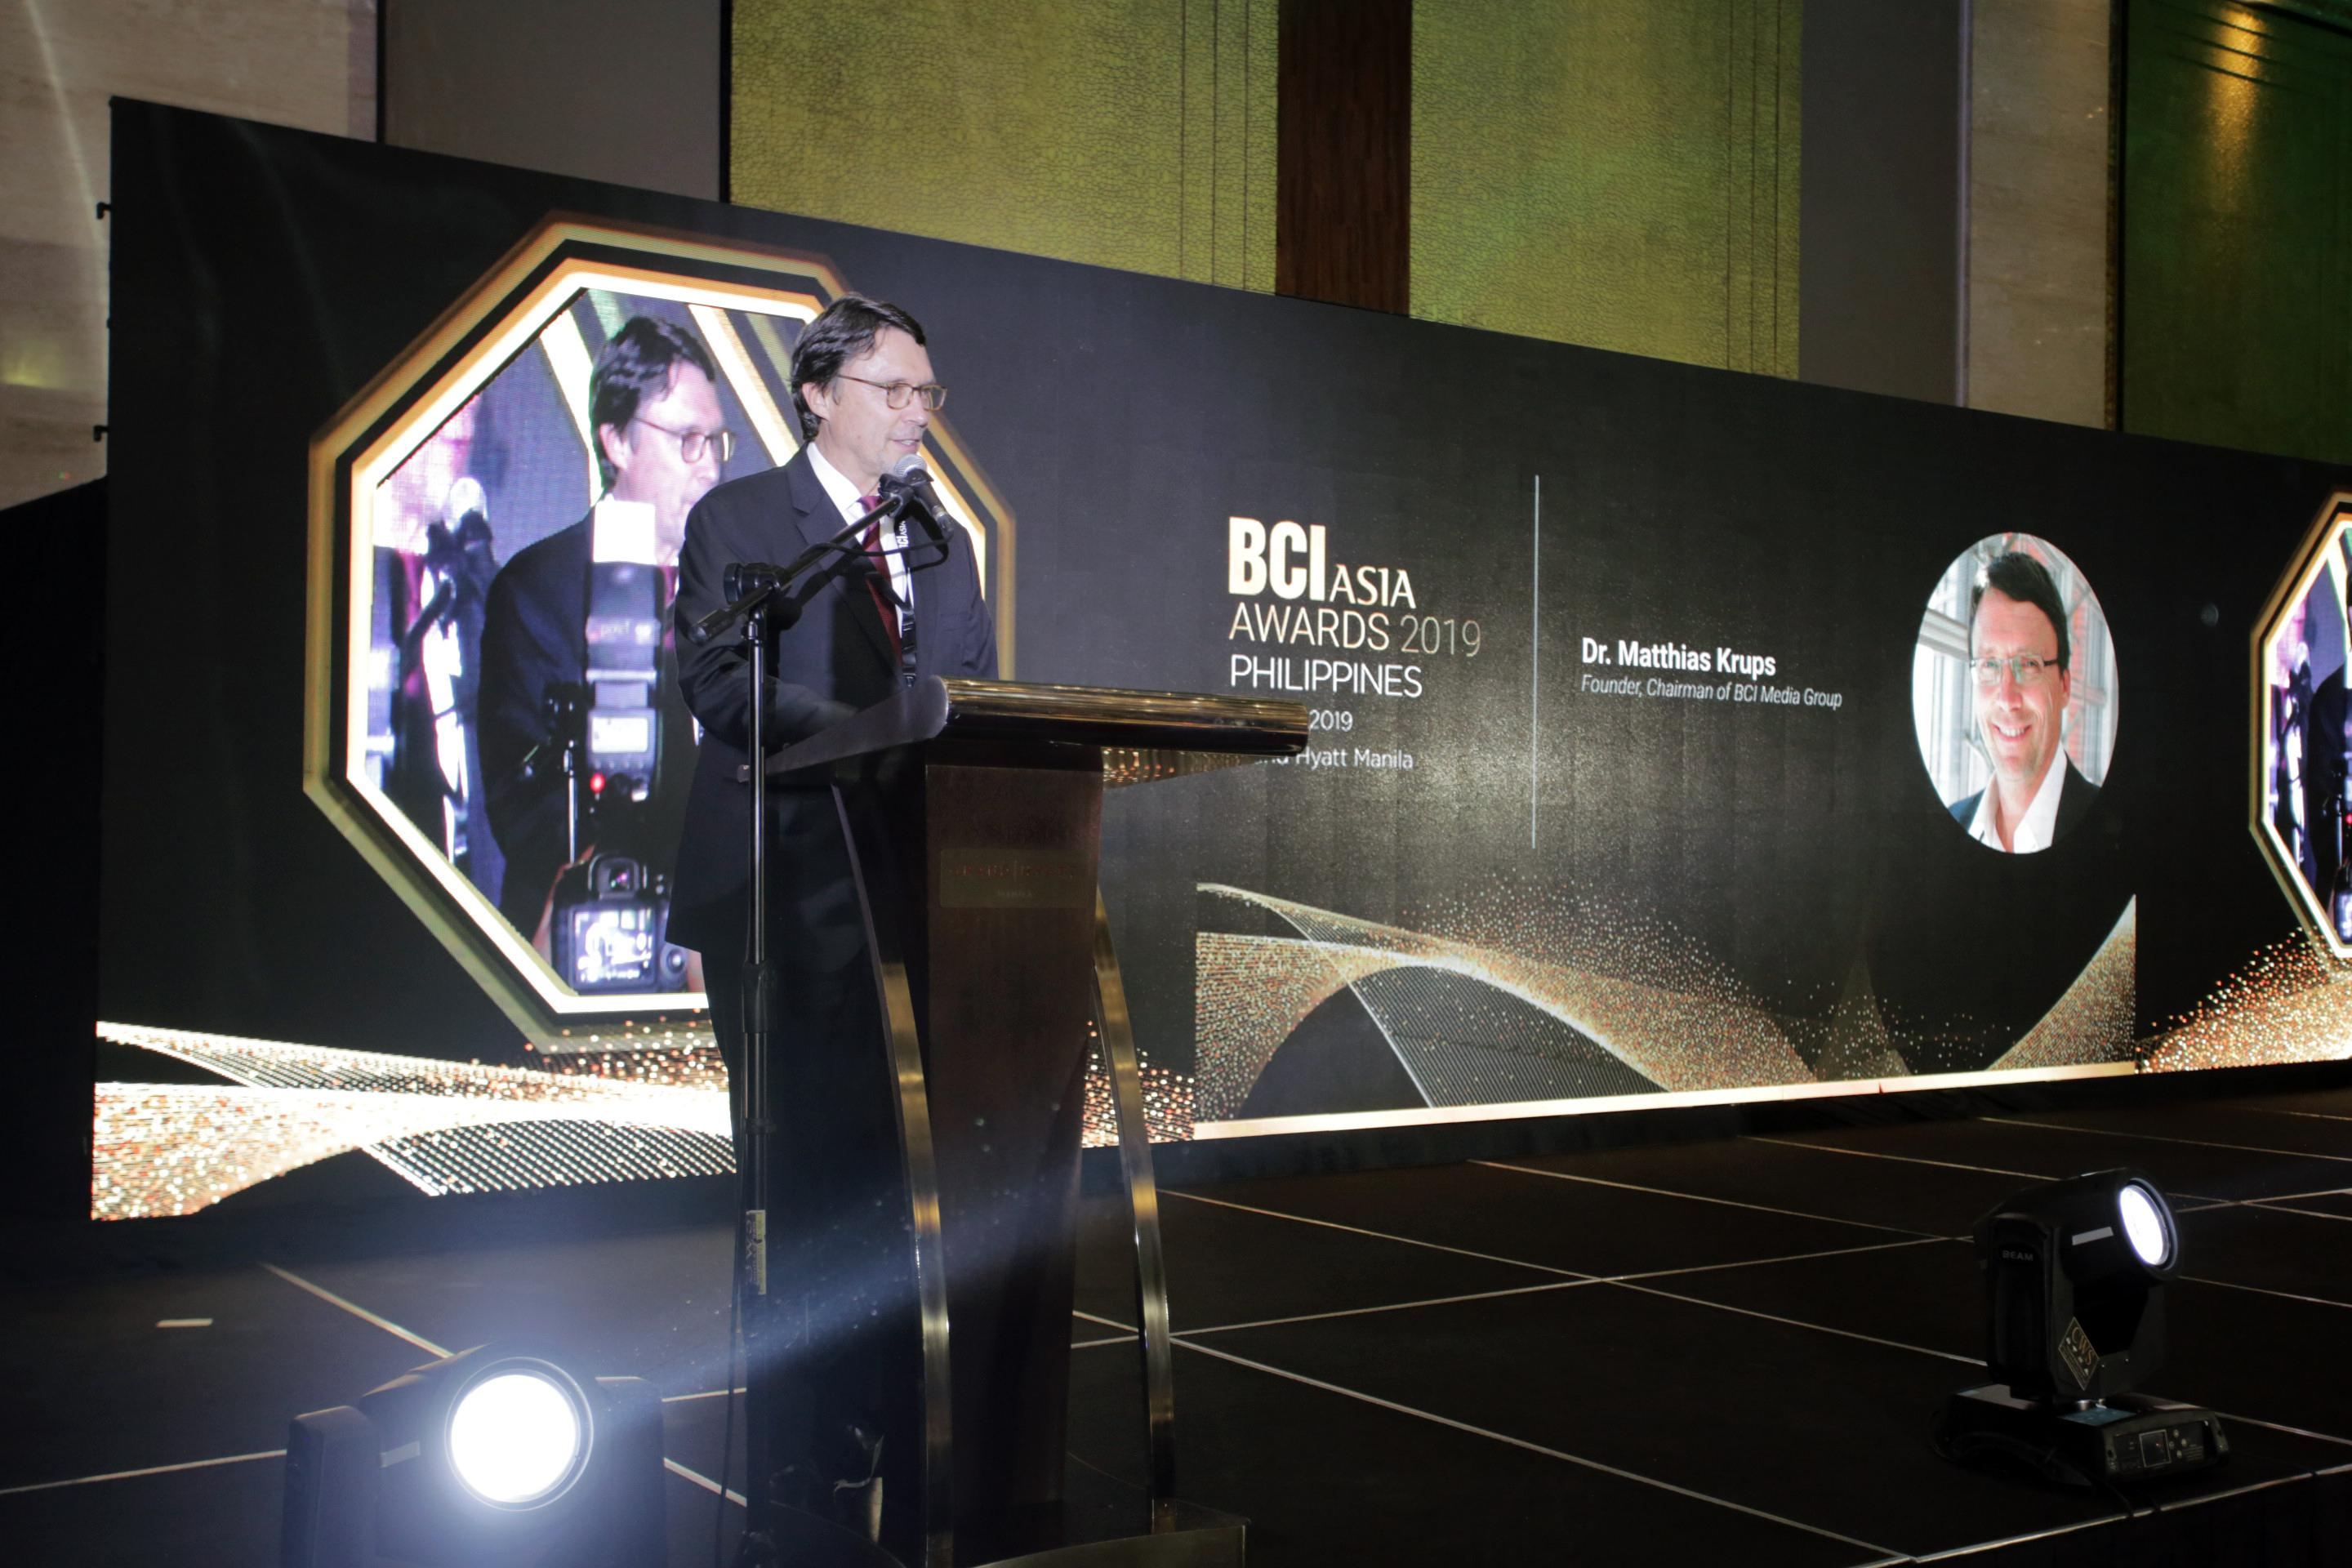 BCI ASIA AWARDS 2019 PHILIPPINES